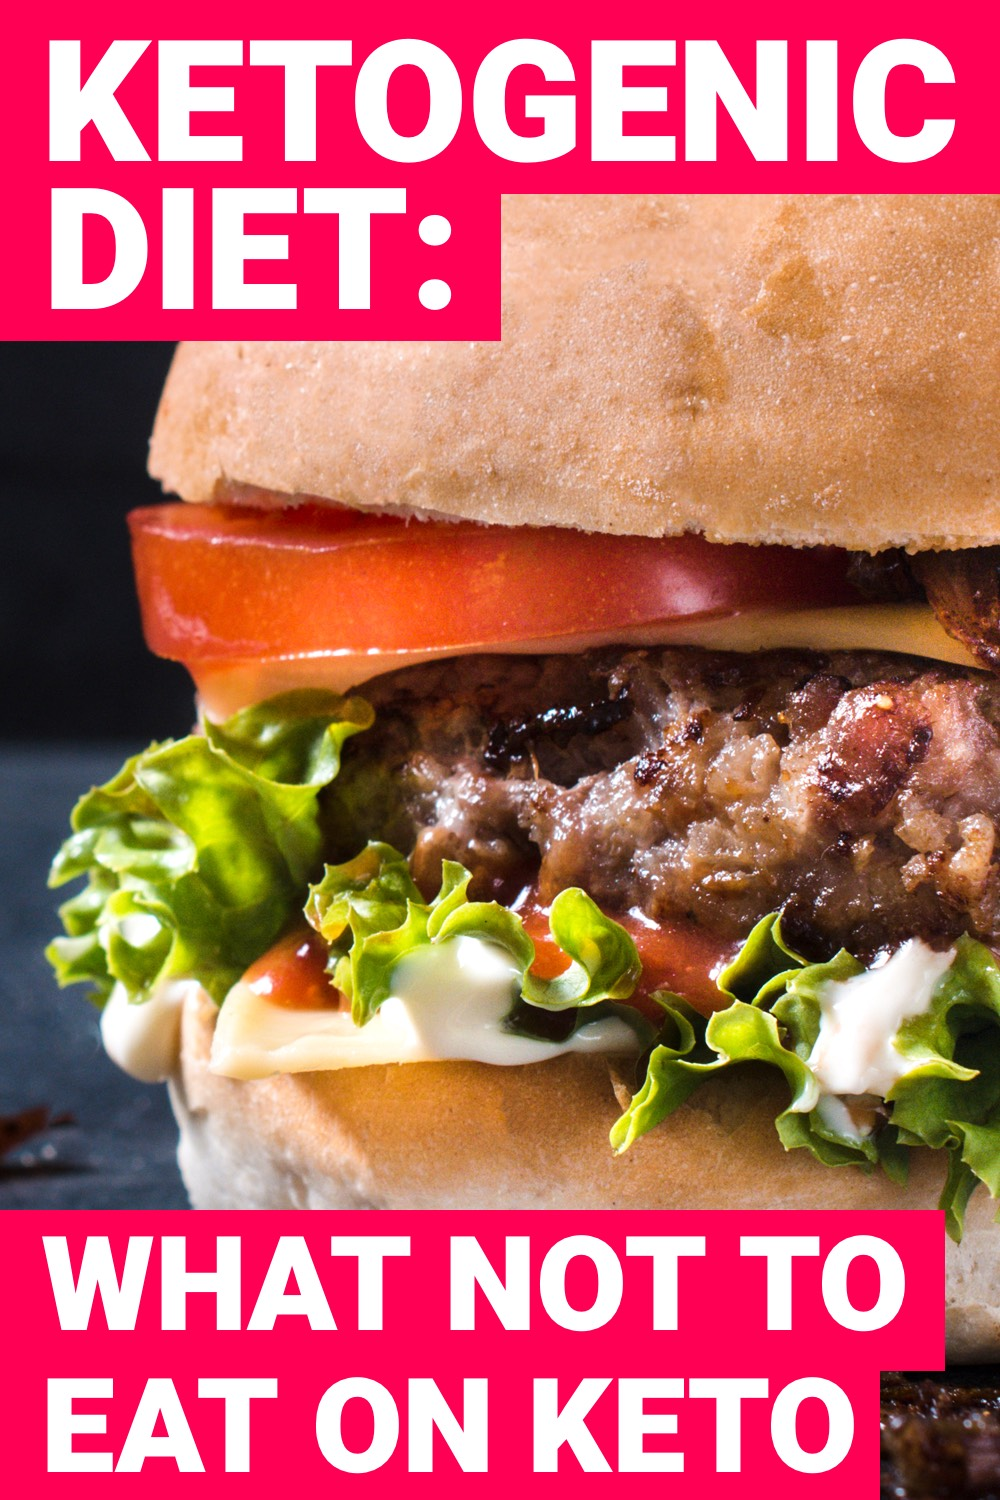 When you start the ketogenic diet, you need to figure out what to eat. Here is what you cannot eat when you're trying to reach ketosis.